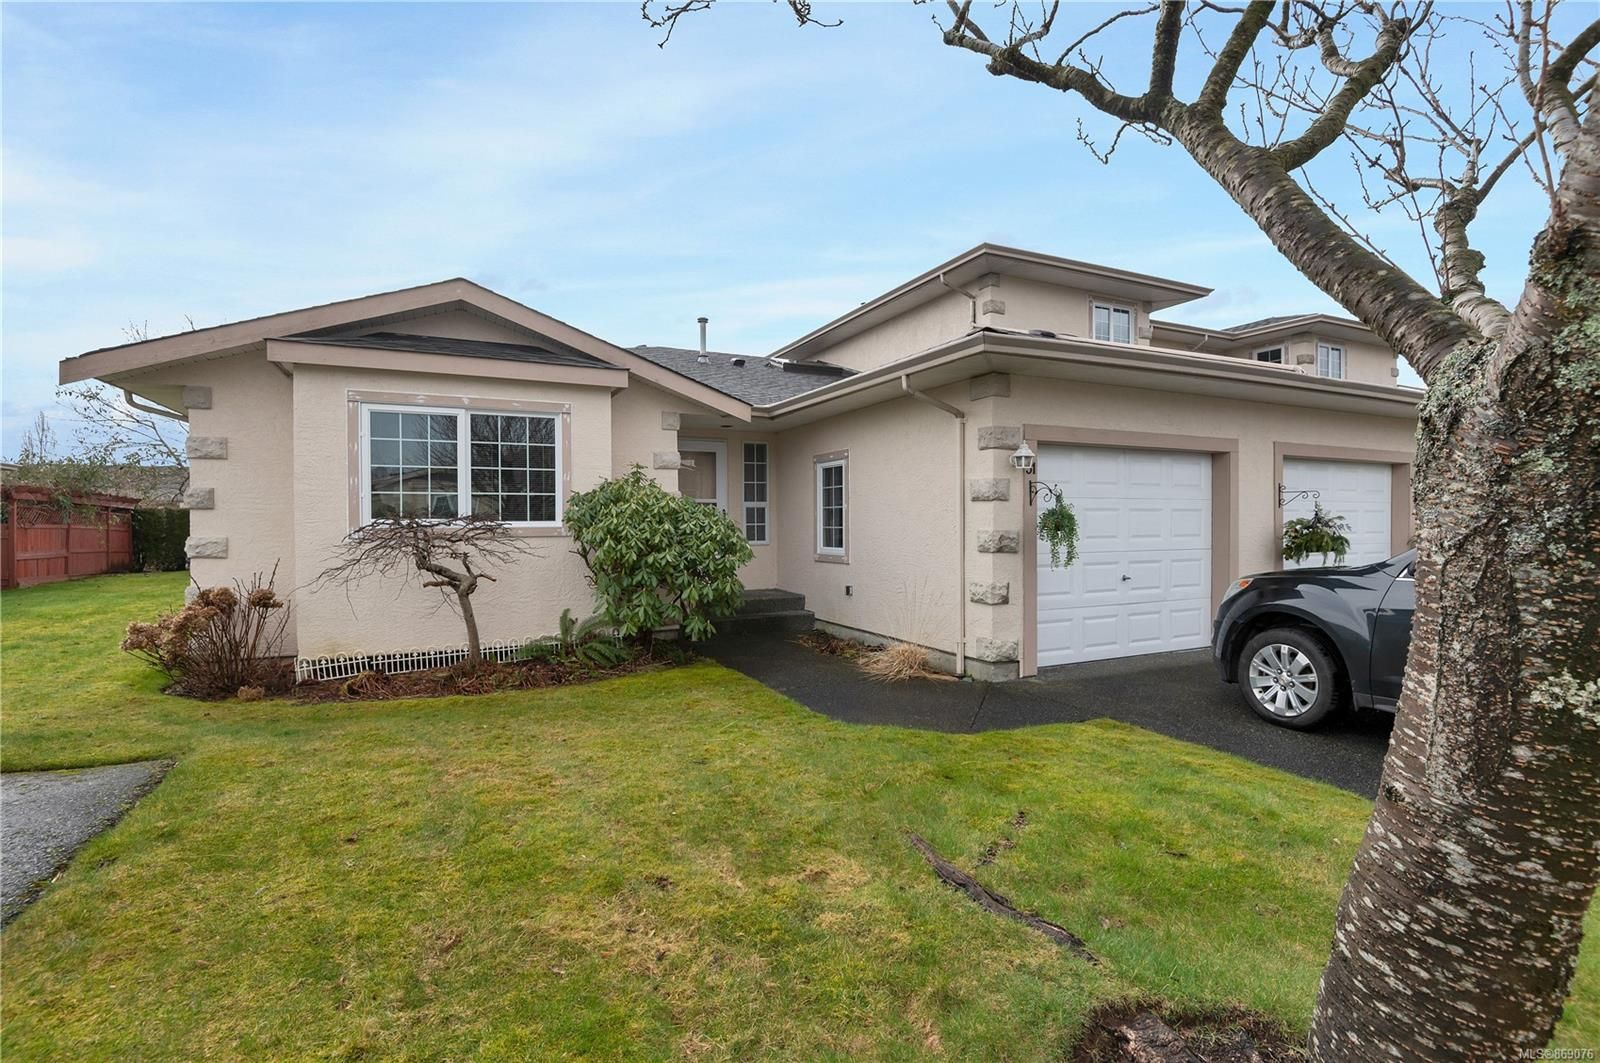 Main Photo: 31 2055 Galerno Rd in : CR Willow Point Row/Townhouse for sale (Campbell River)  : MLS®# 869076